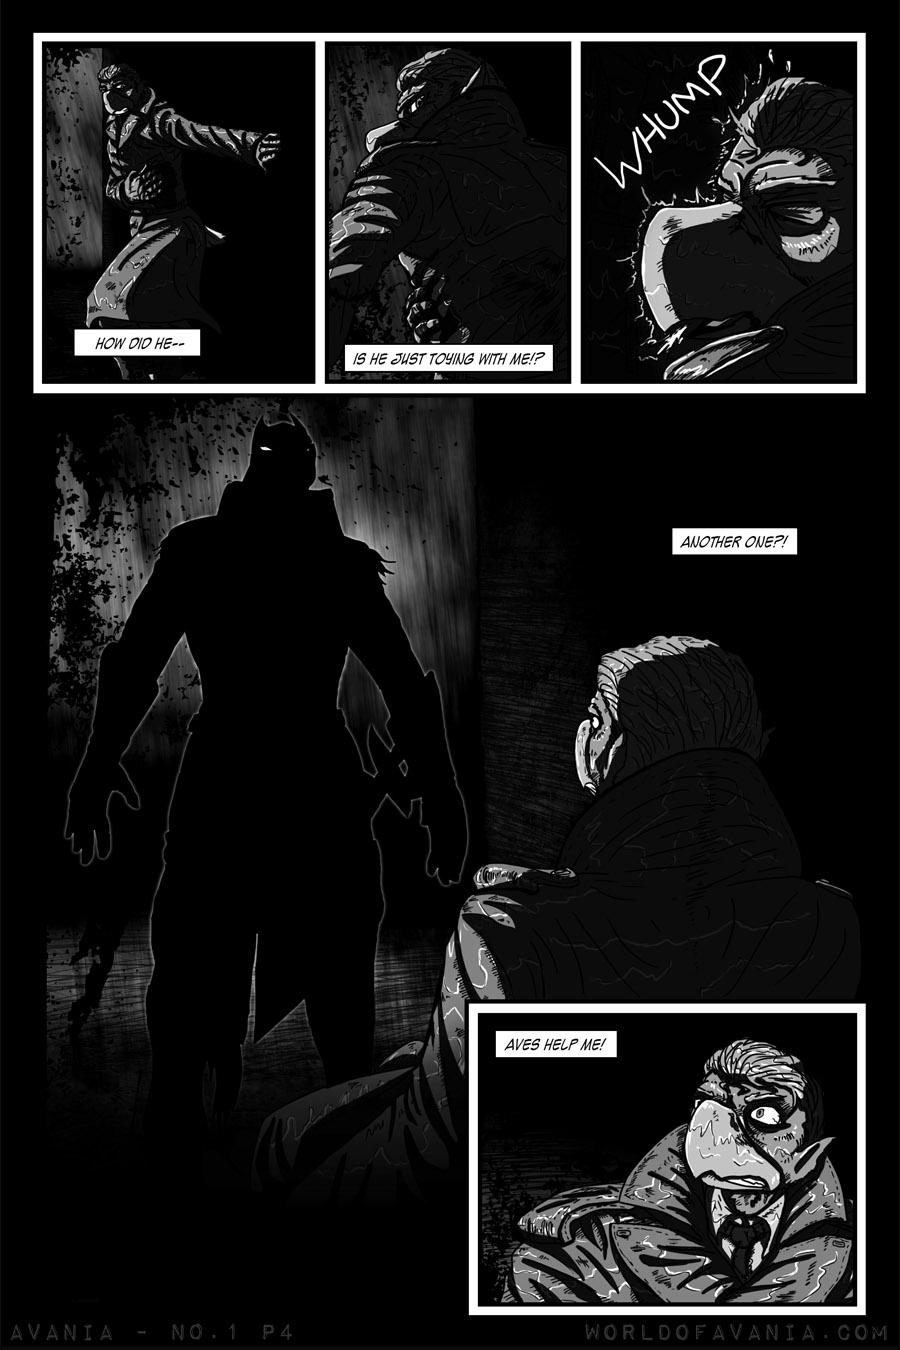 Avania Comic - Issue No.1, Page 4